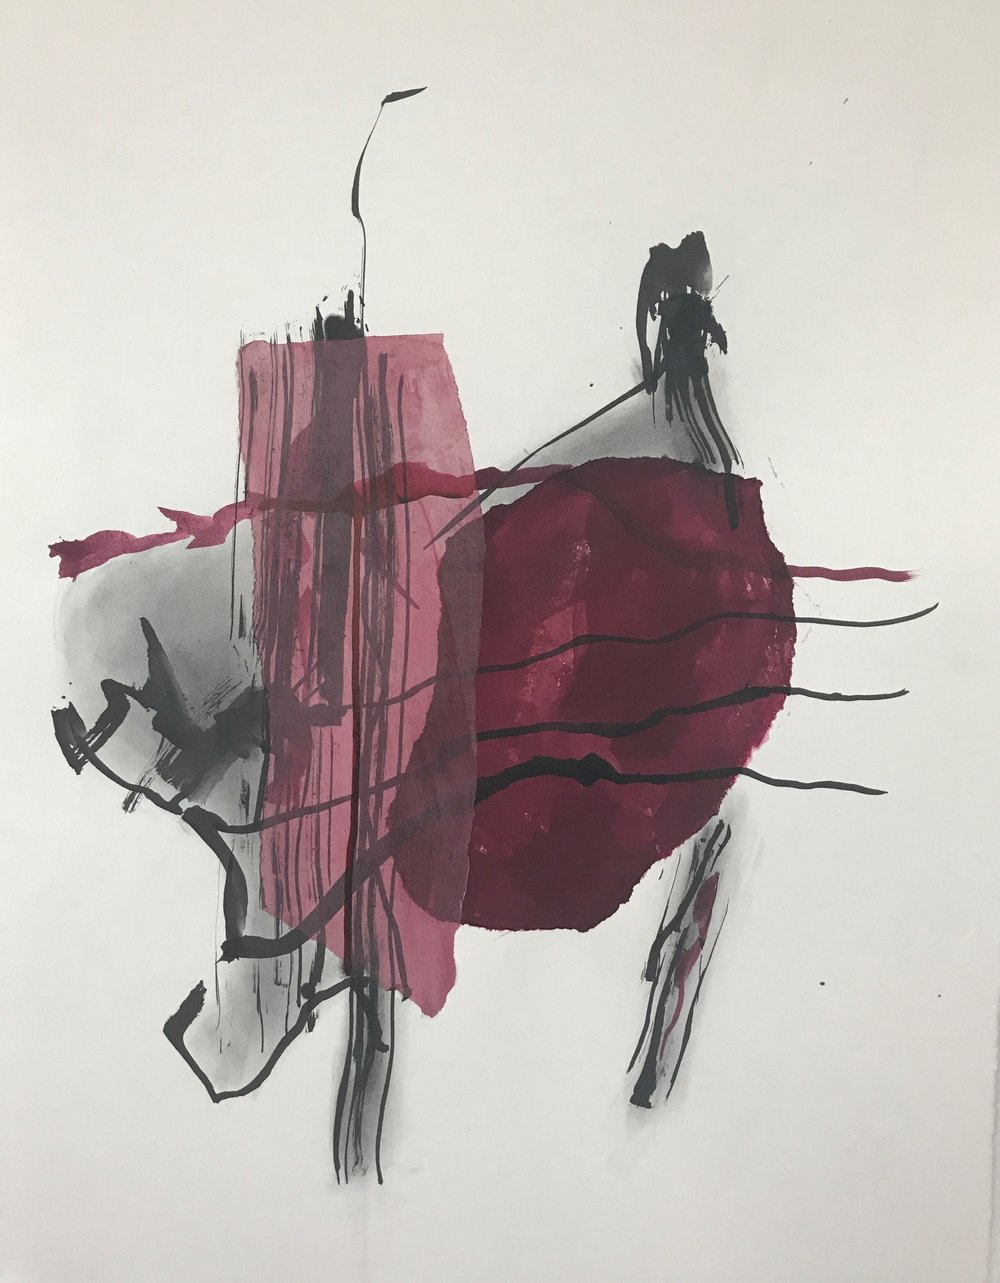 COCHINEAL DRAWING #2